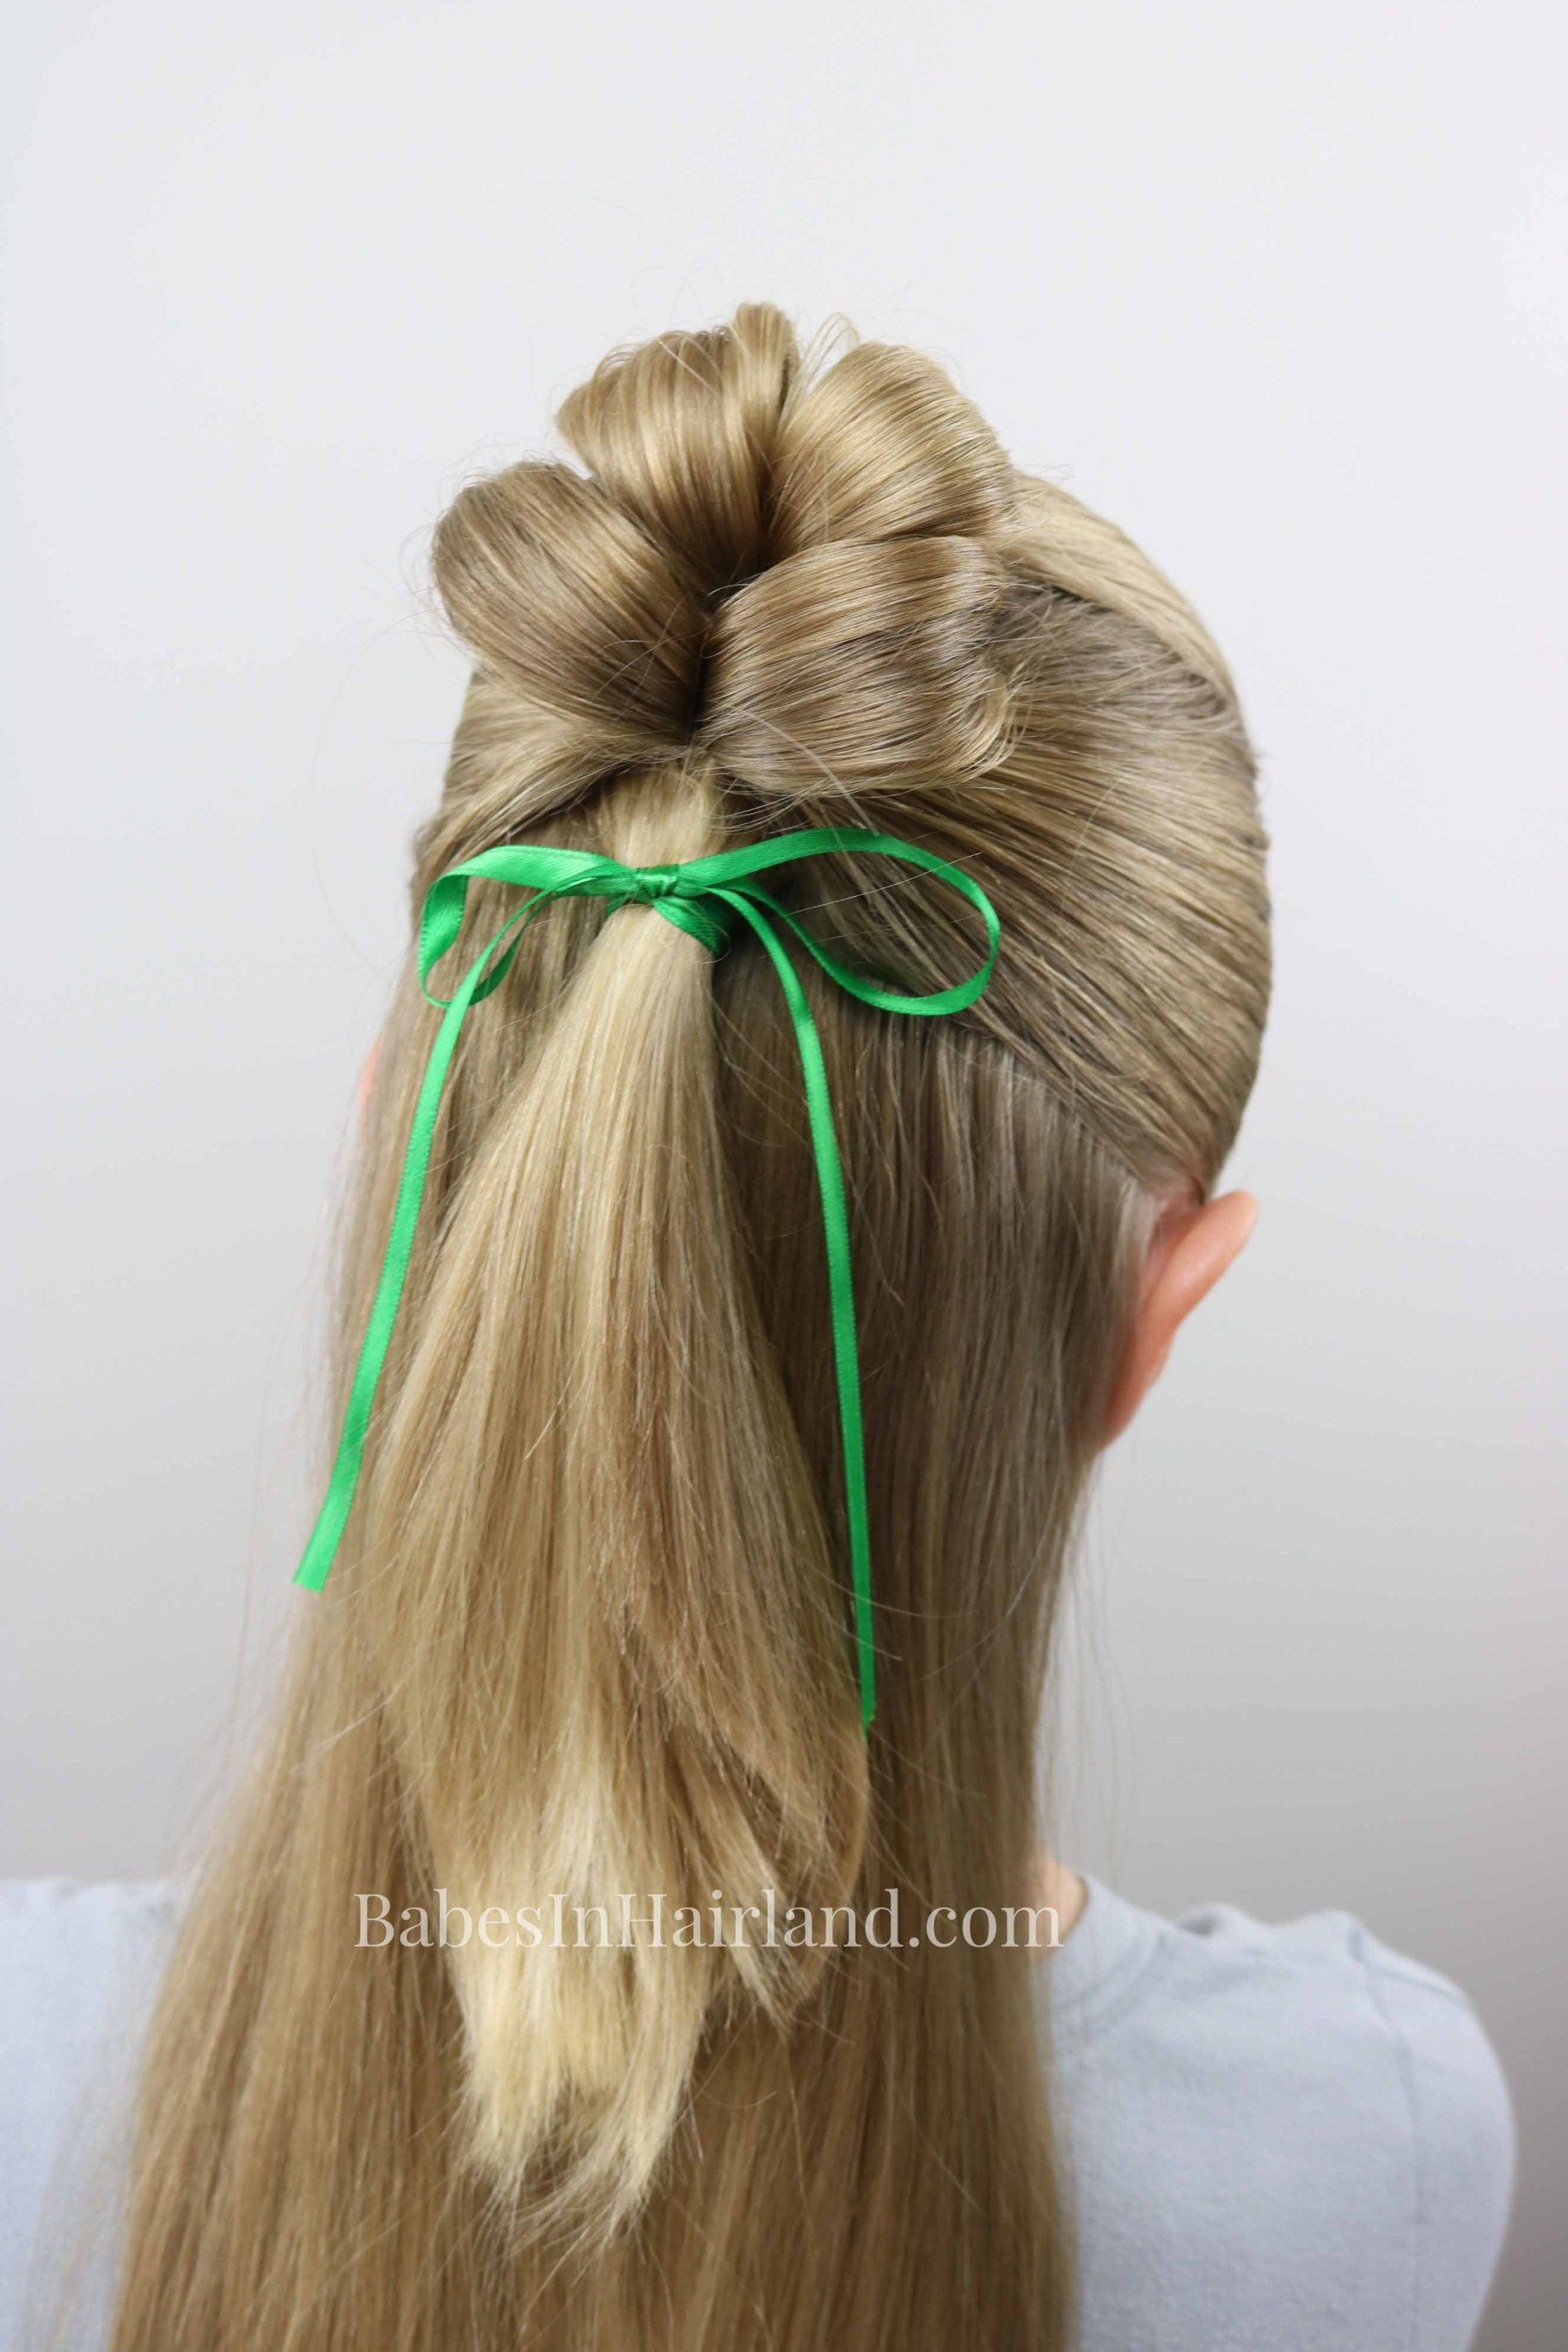 4 Leaf Clover Hairstyle St Patrick S Day Cute Lucky Shamrock Clover Hairstyle Kids Hairstyles Hair Styles